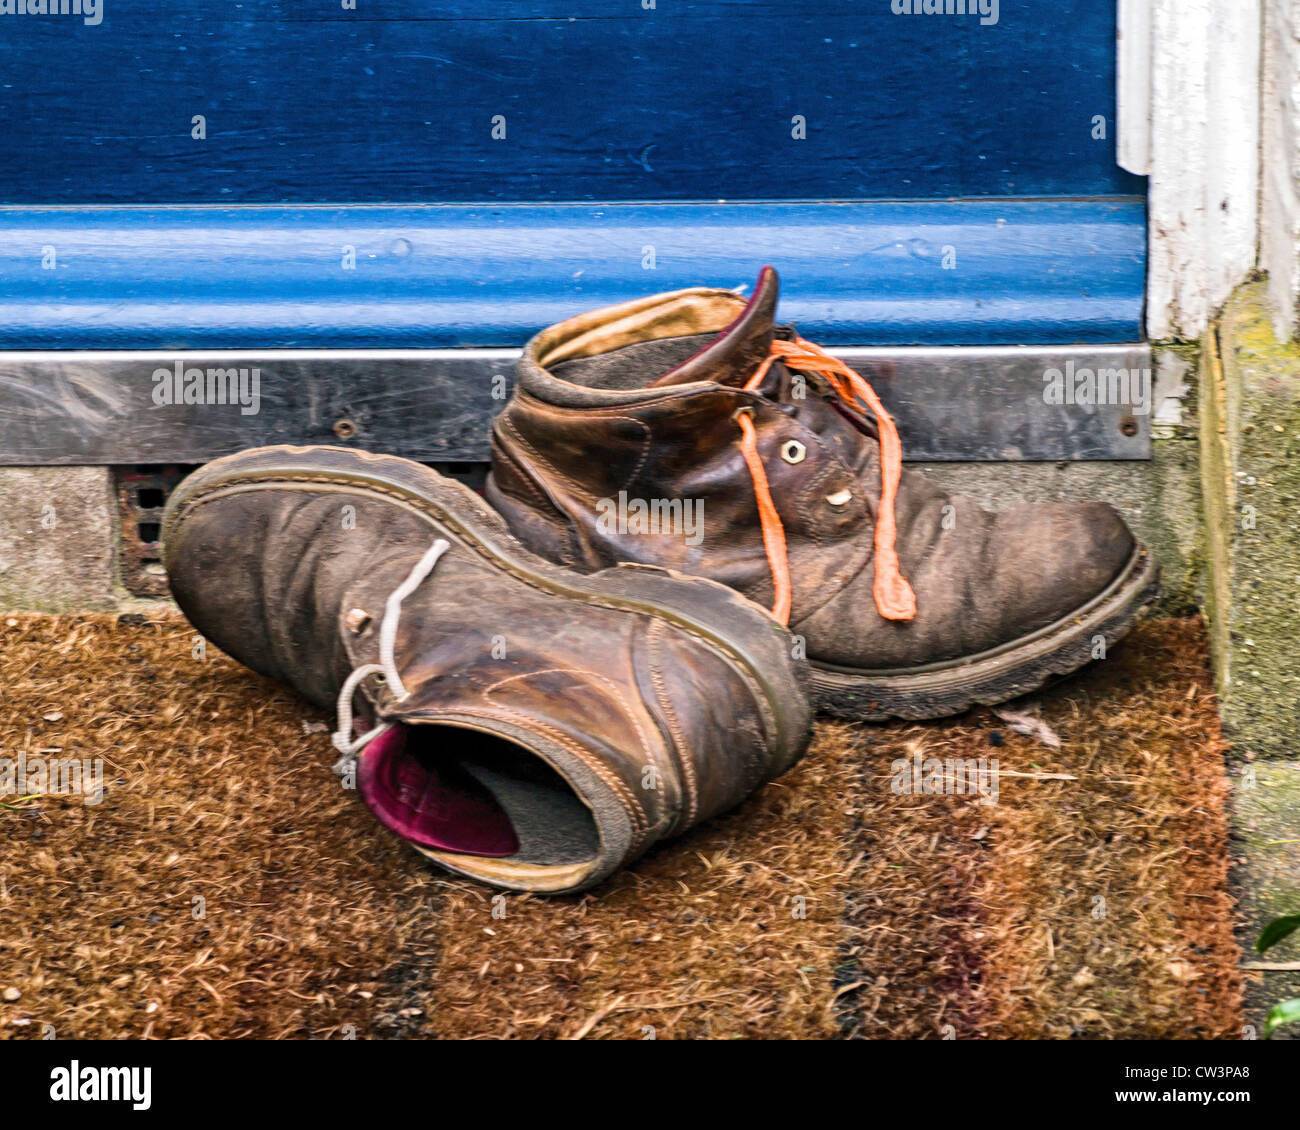 Dirty working boots with mismatched laces are left on a mat outside a front door - Stock Image